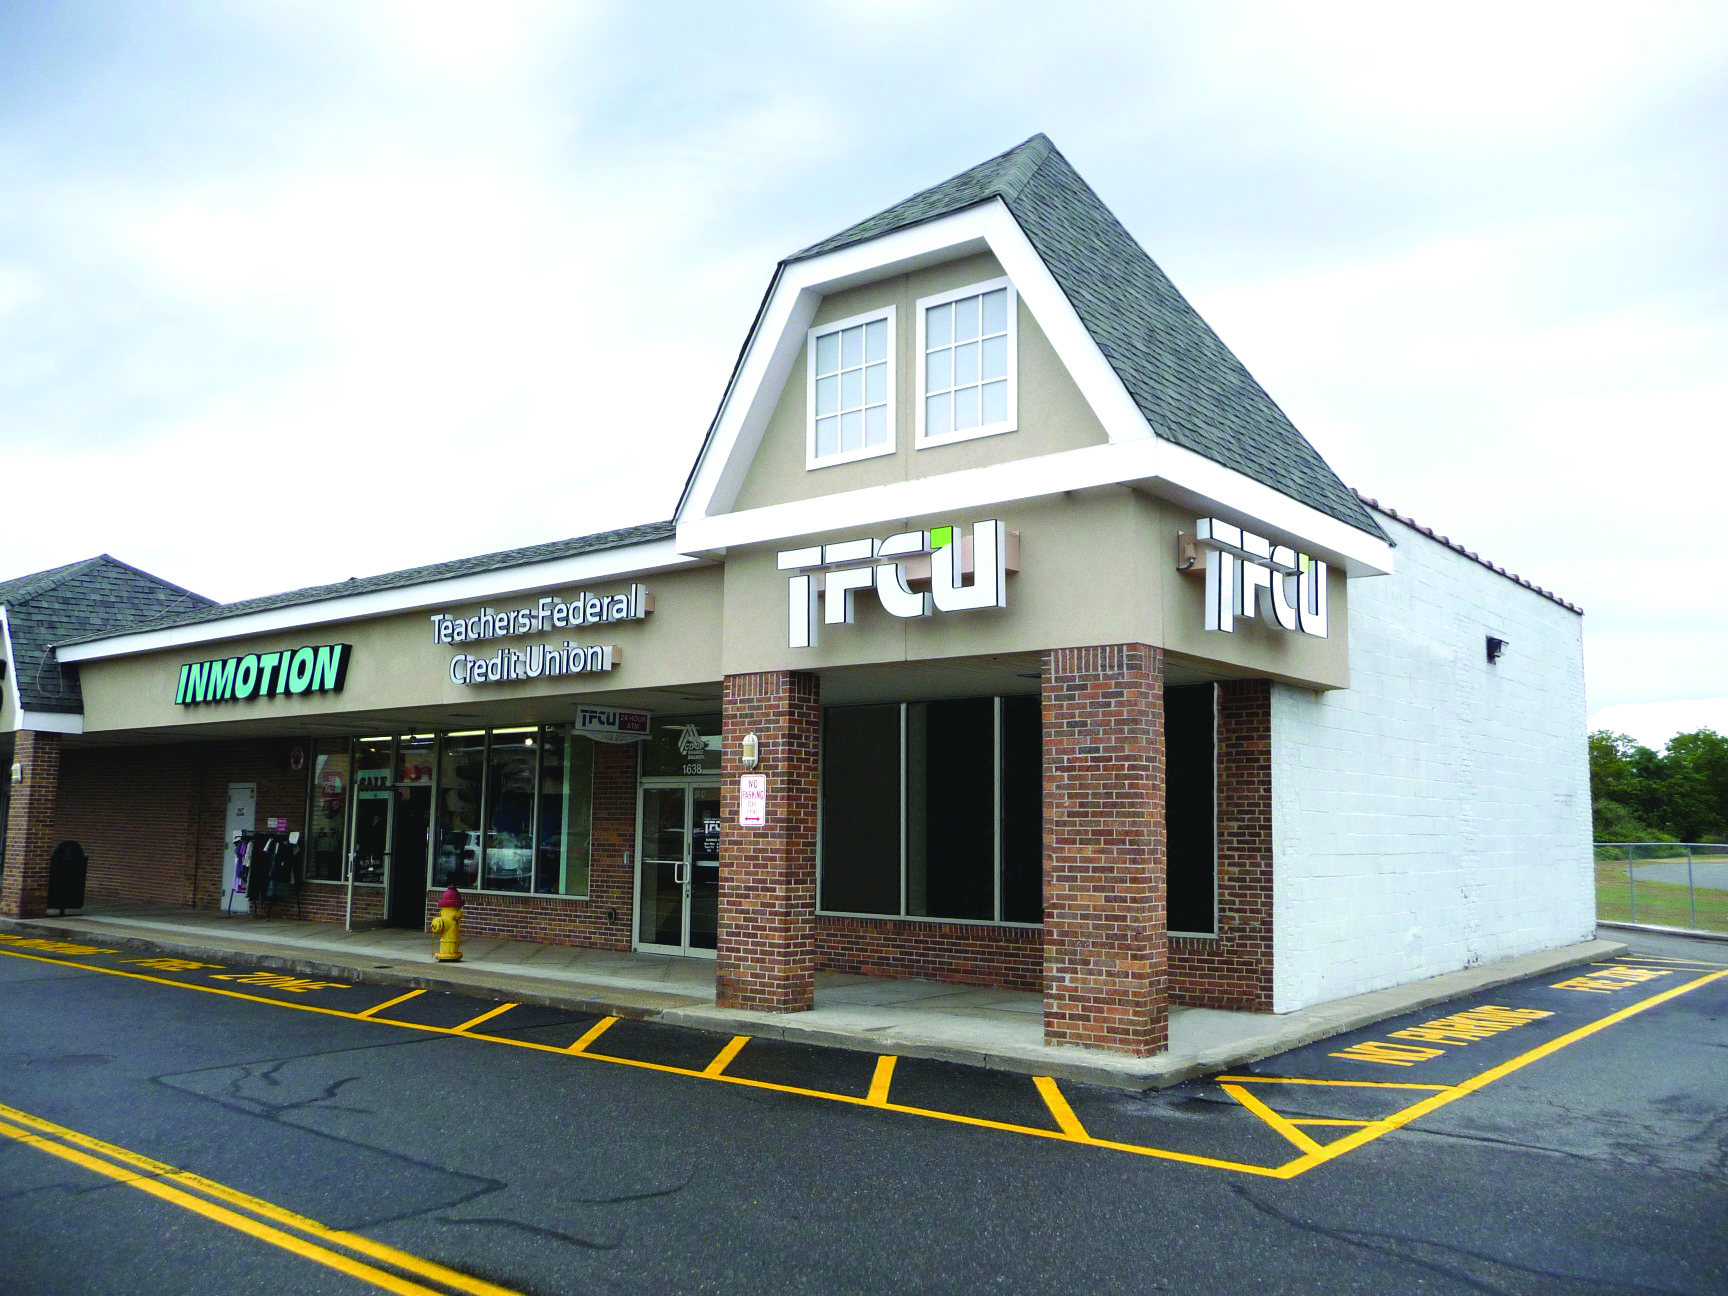 Southern middlesex county teachers federal credit union images 2